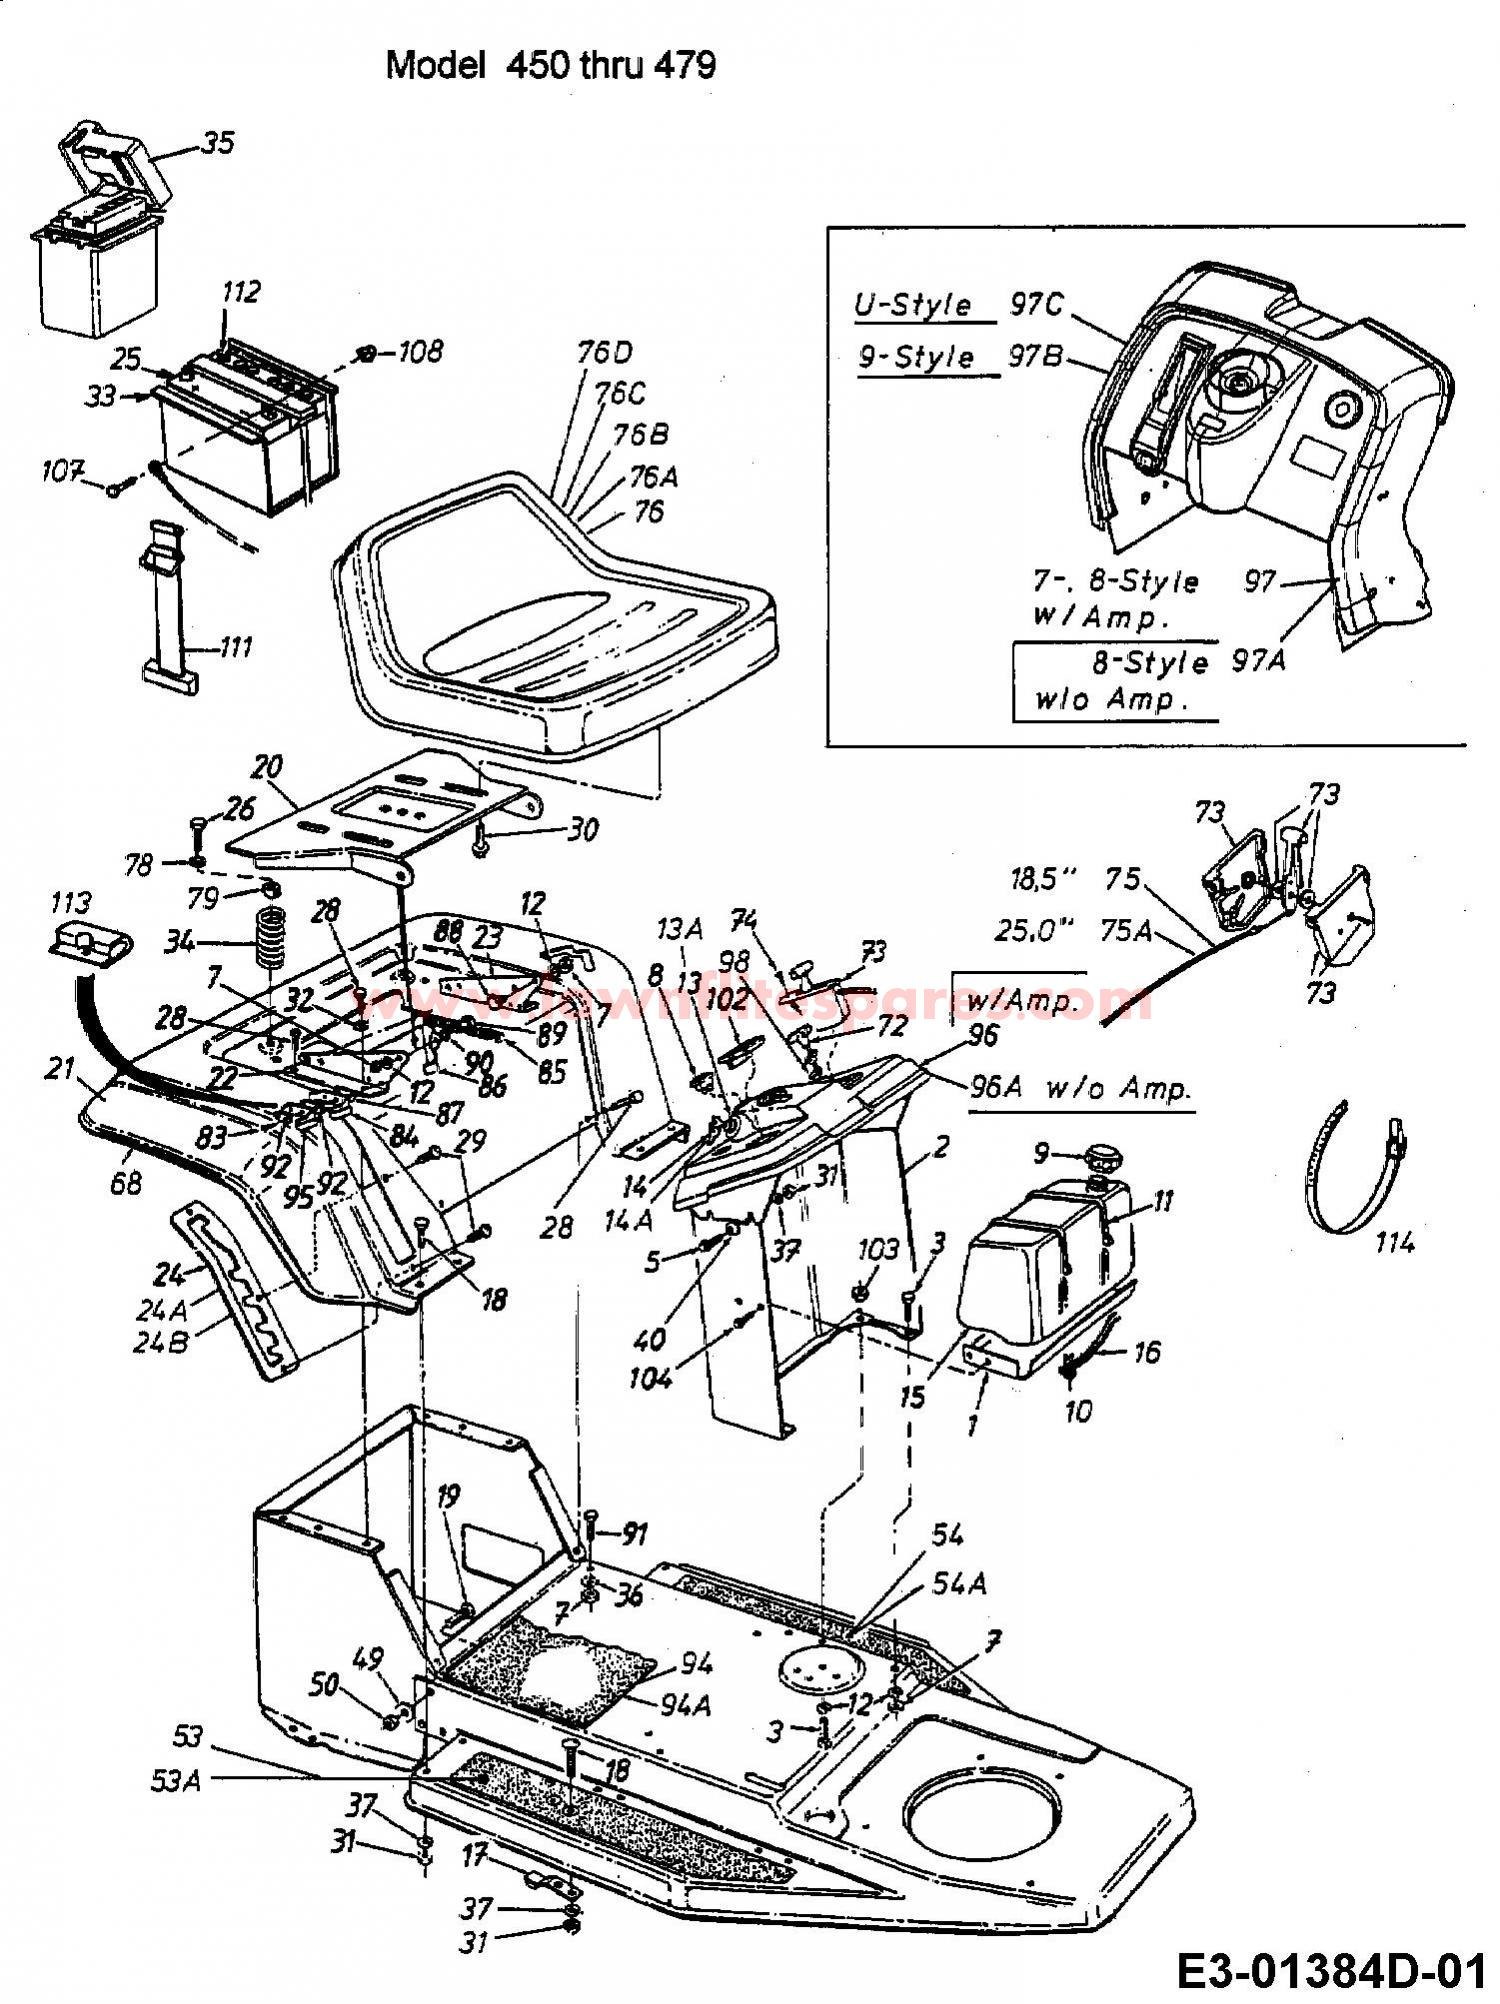 john deere mower wiring diagram john discover your wiring l4200 kubota parts diagram john deere mower wiring